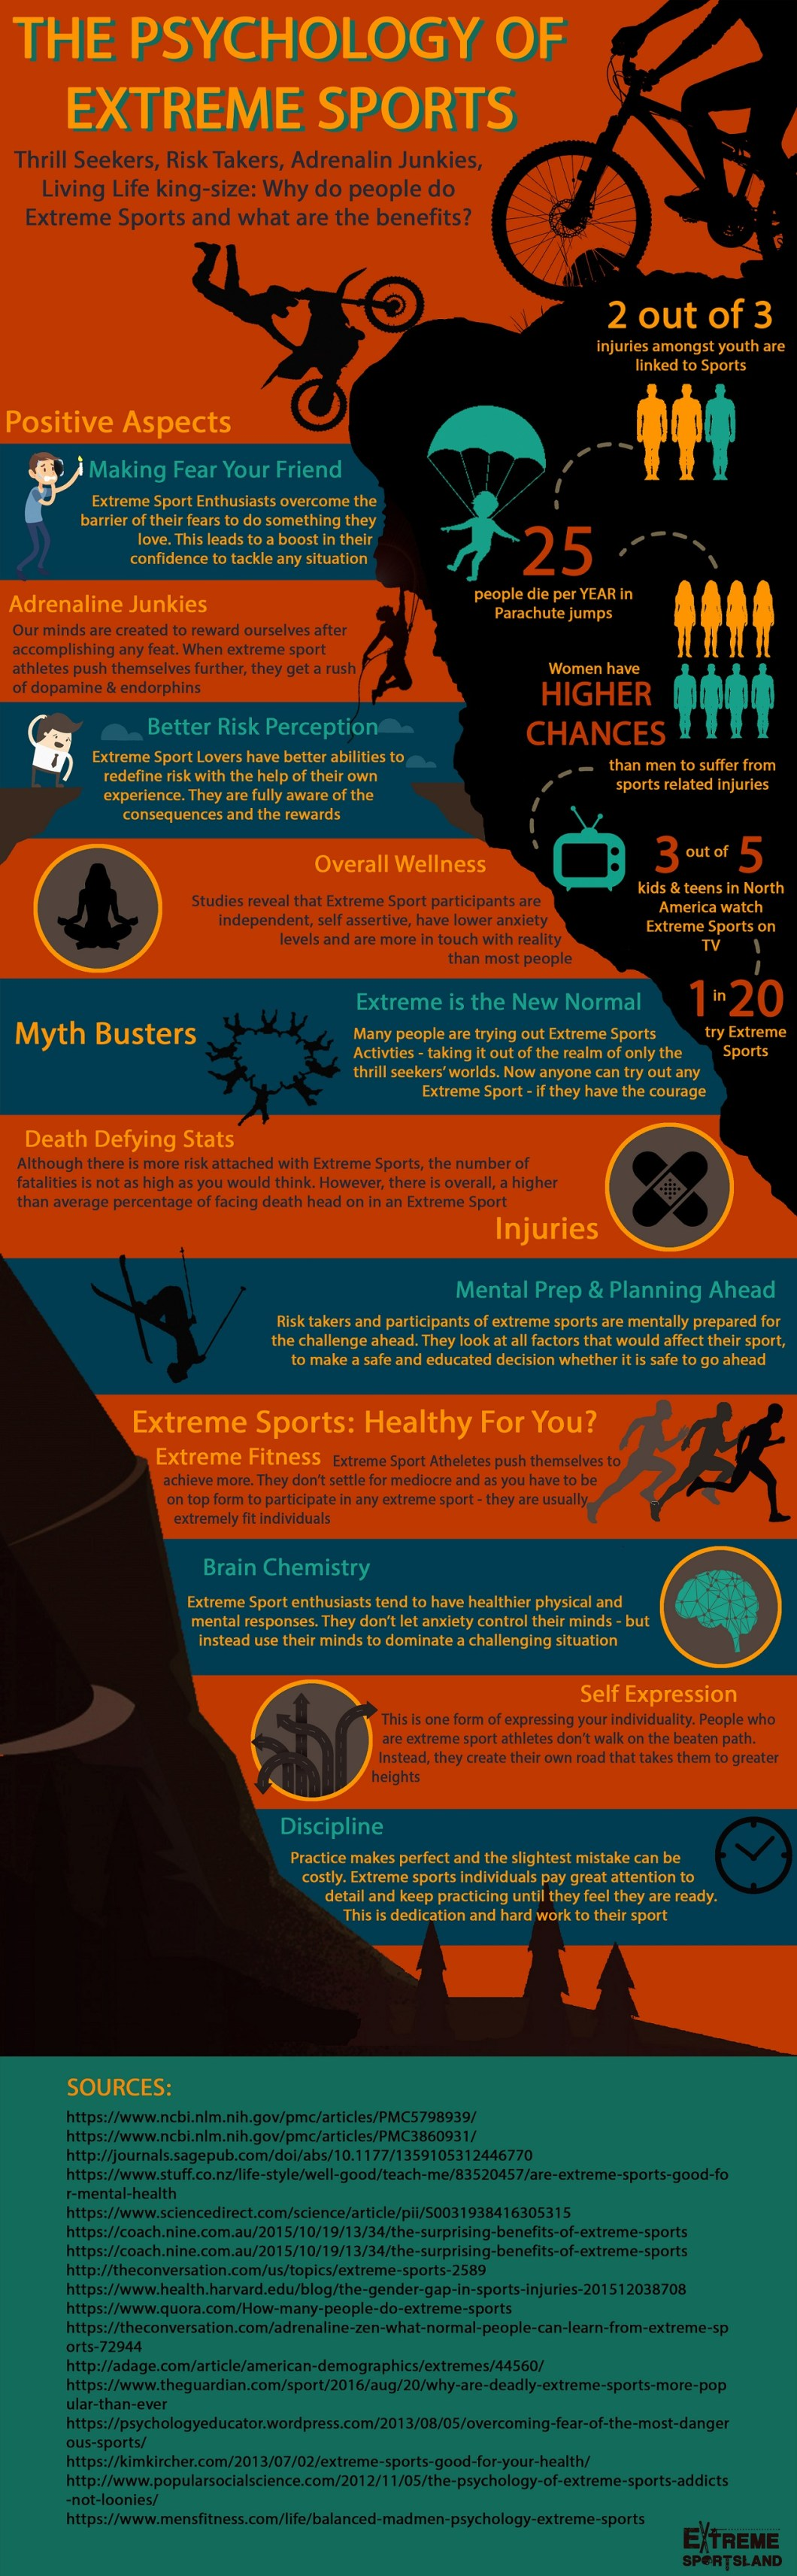 Why Do People Become Extreme Sports Junkies? - Infographic